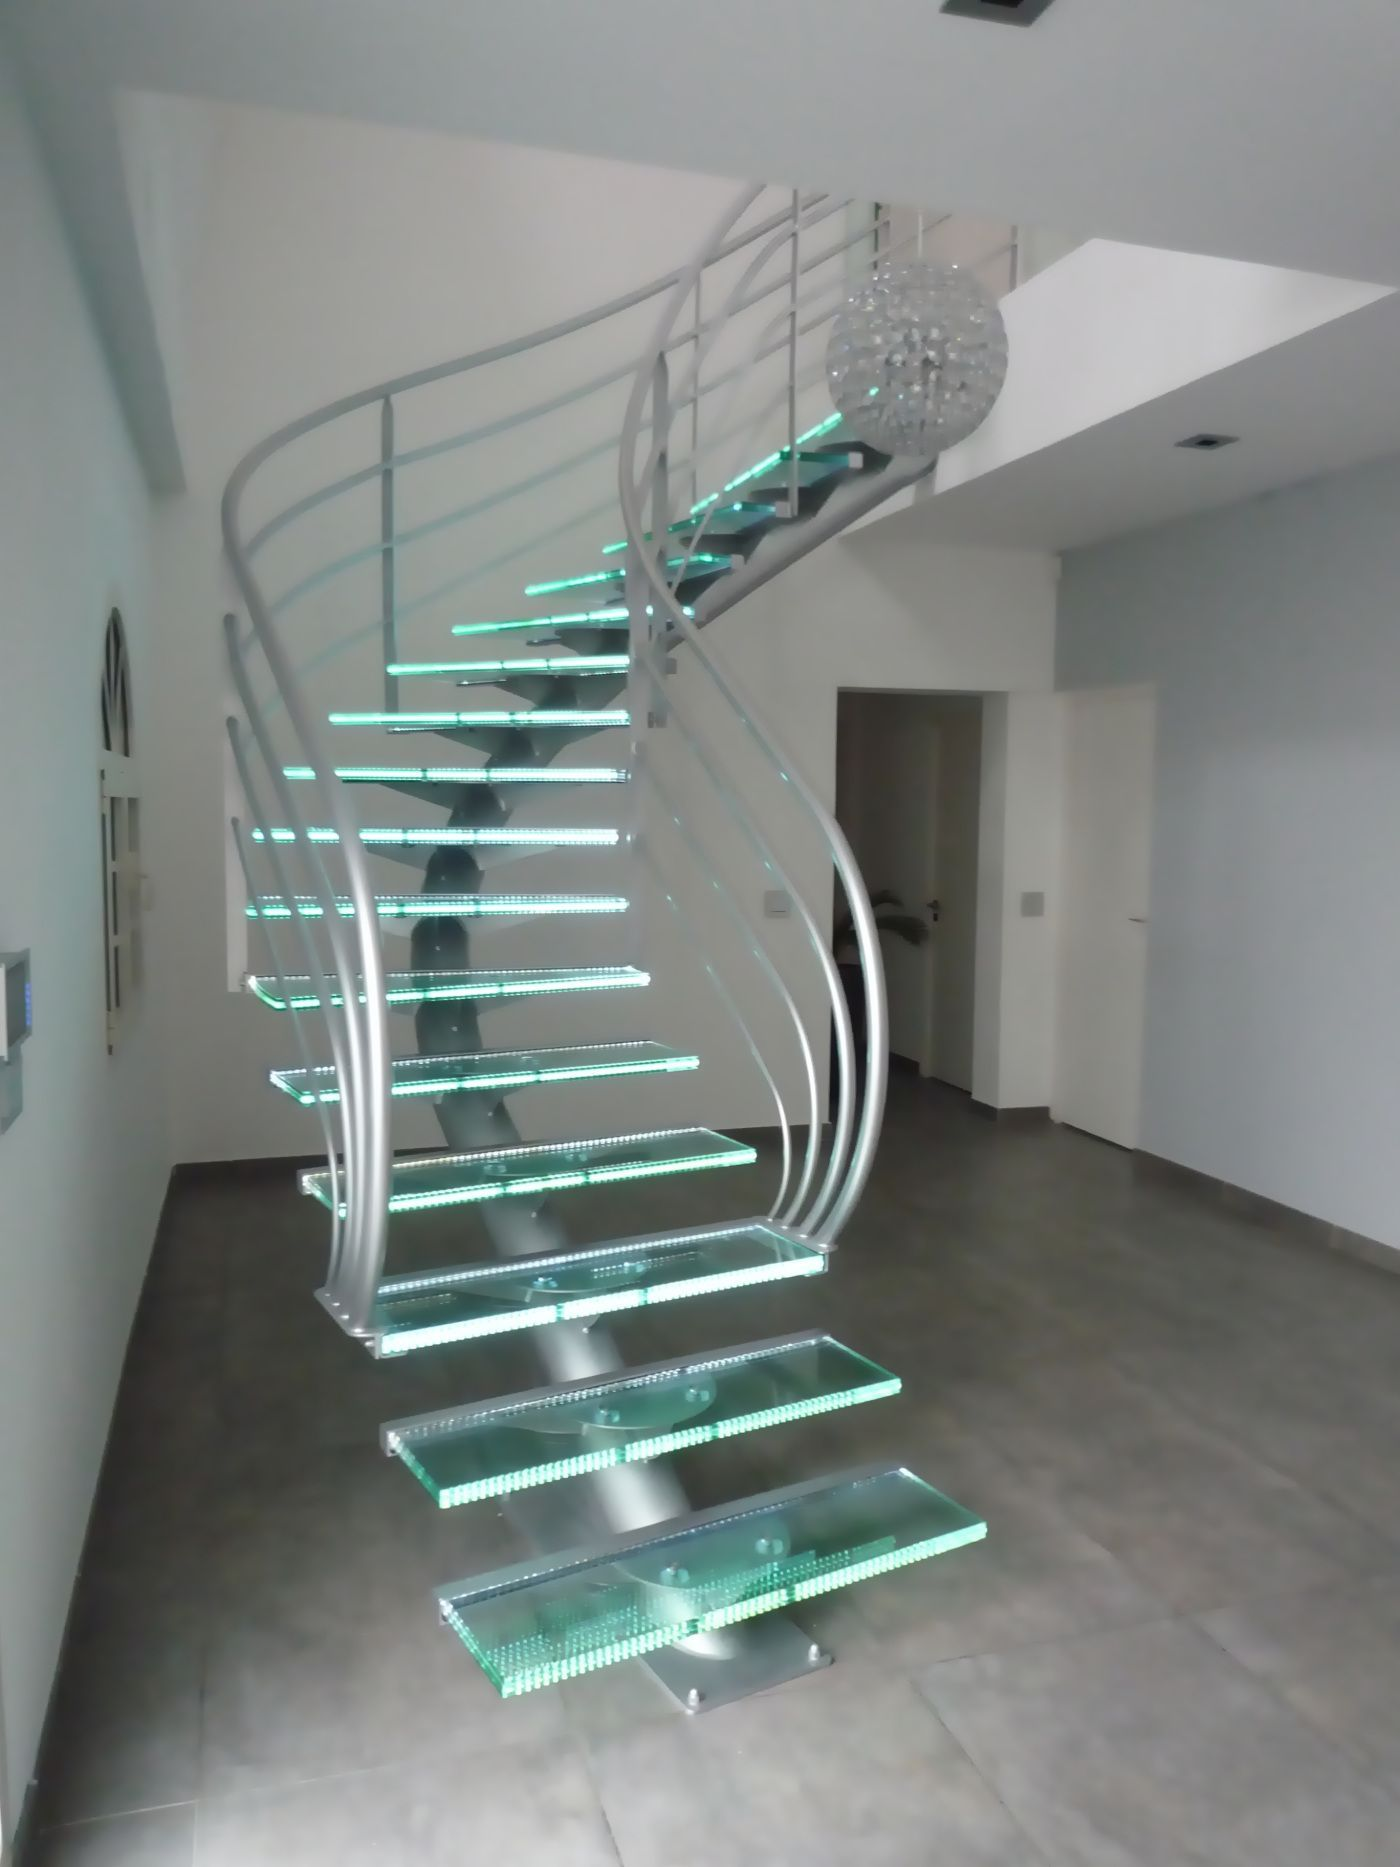 Staircase ideas design and layout to inspire your own remodel painted diy decorating basement pictures moder also escalier kocentrik koc kozac in rh pinterest